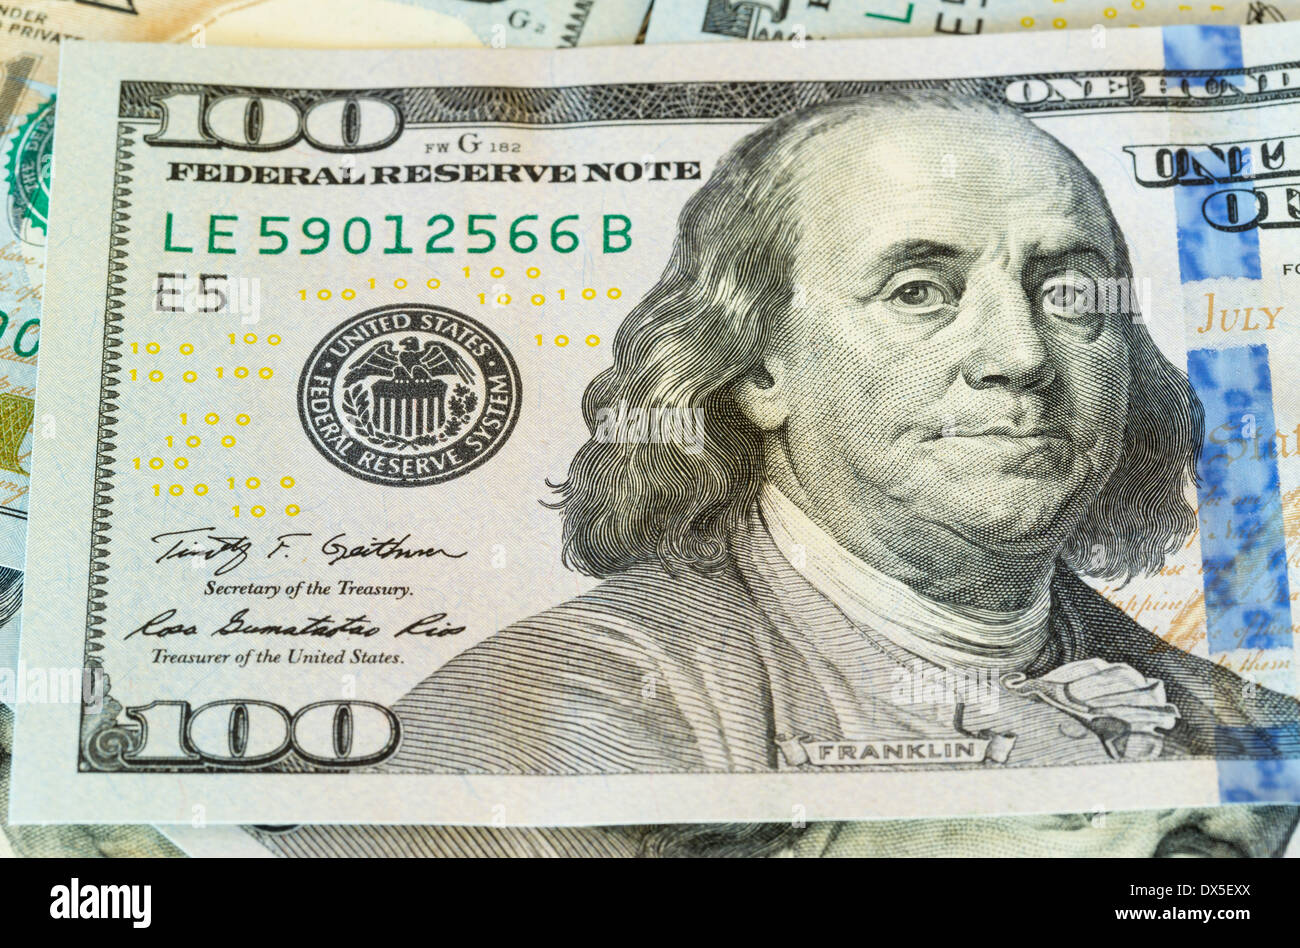 New design of US currency one hundred dollar bill - Stock Image